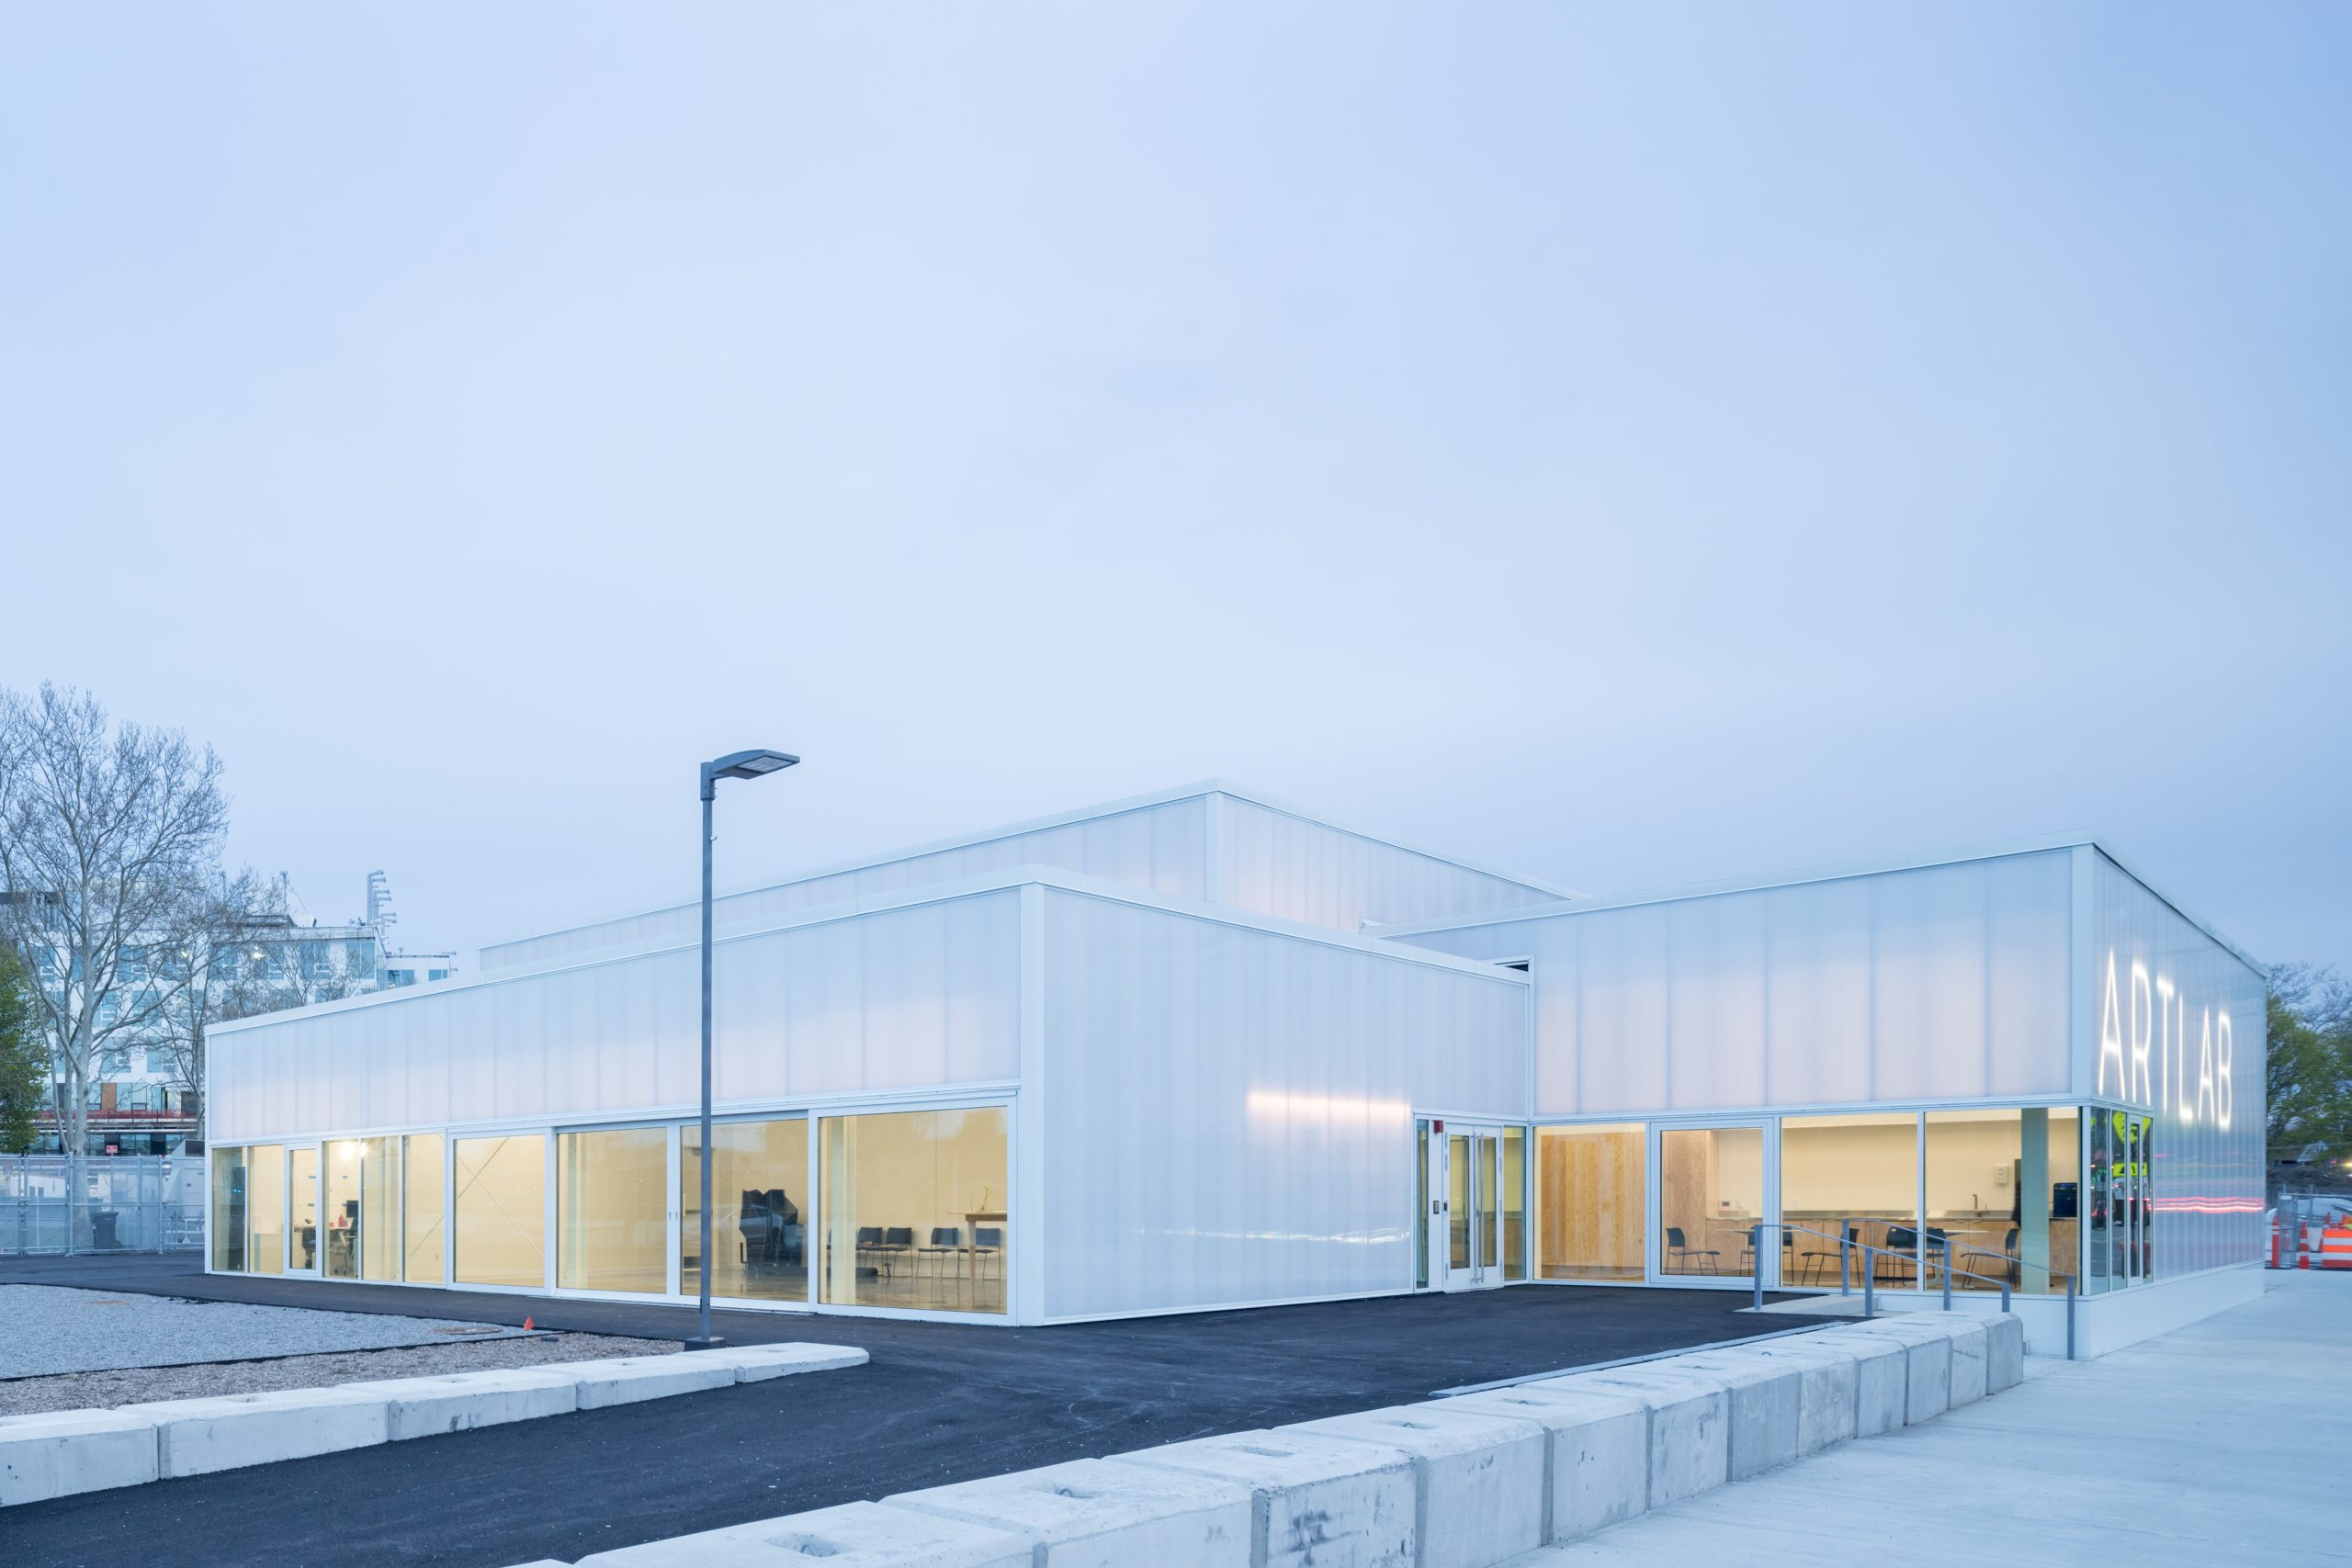 Stacked boxy volumes clad in translucent plastic